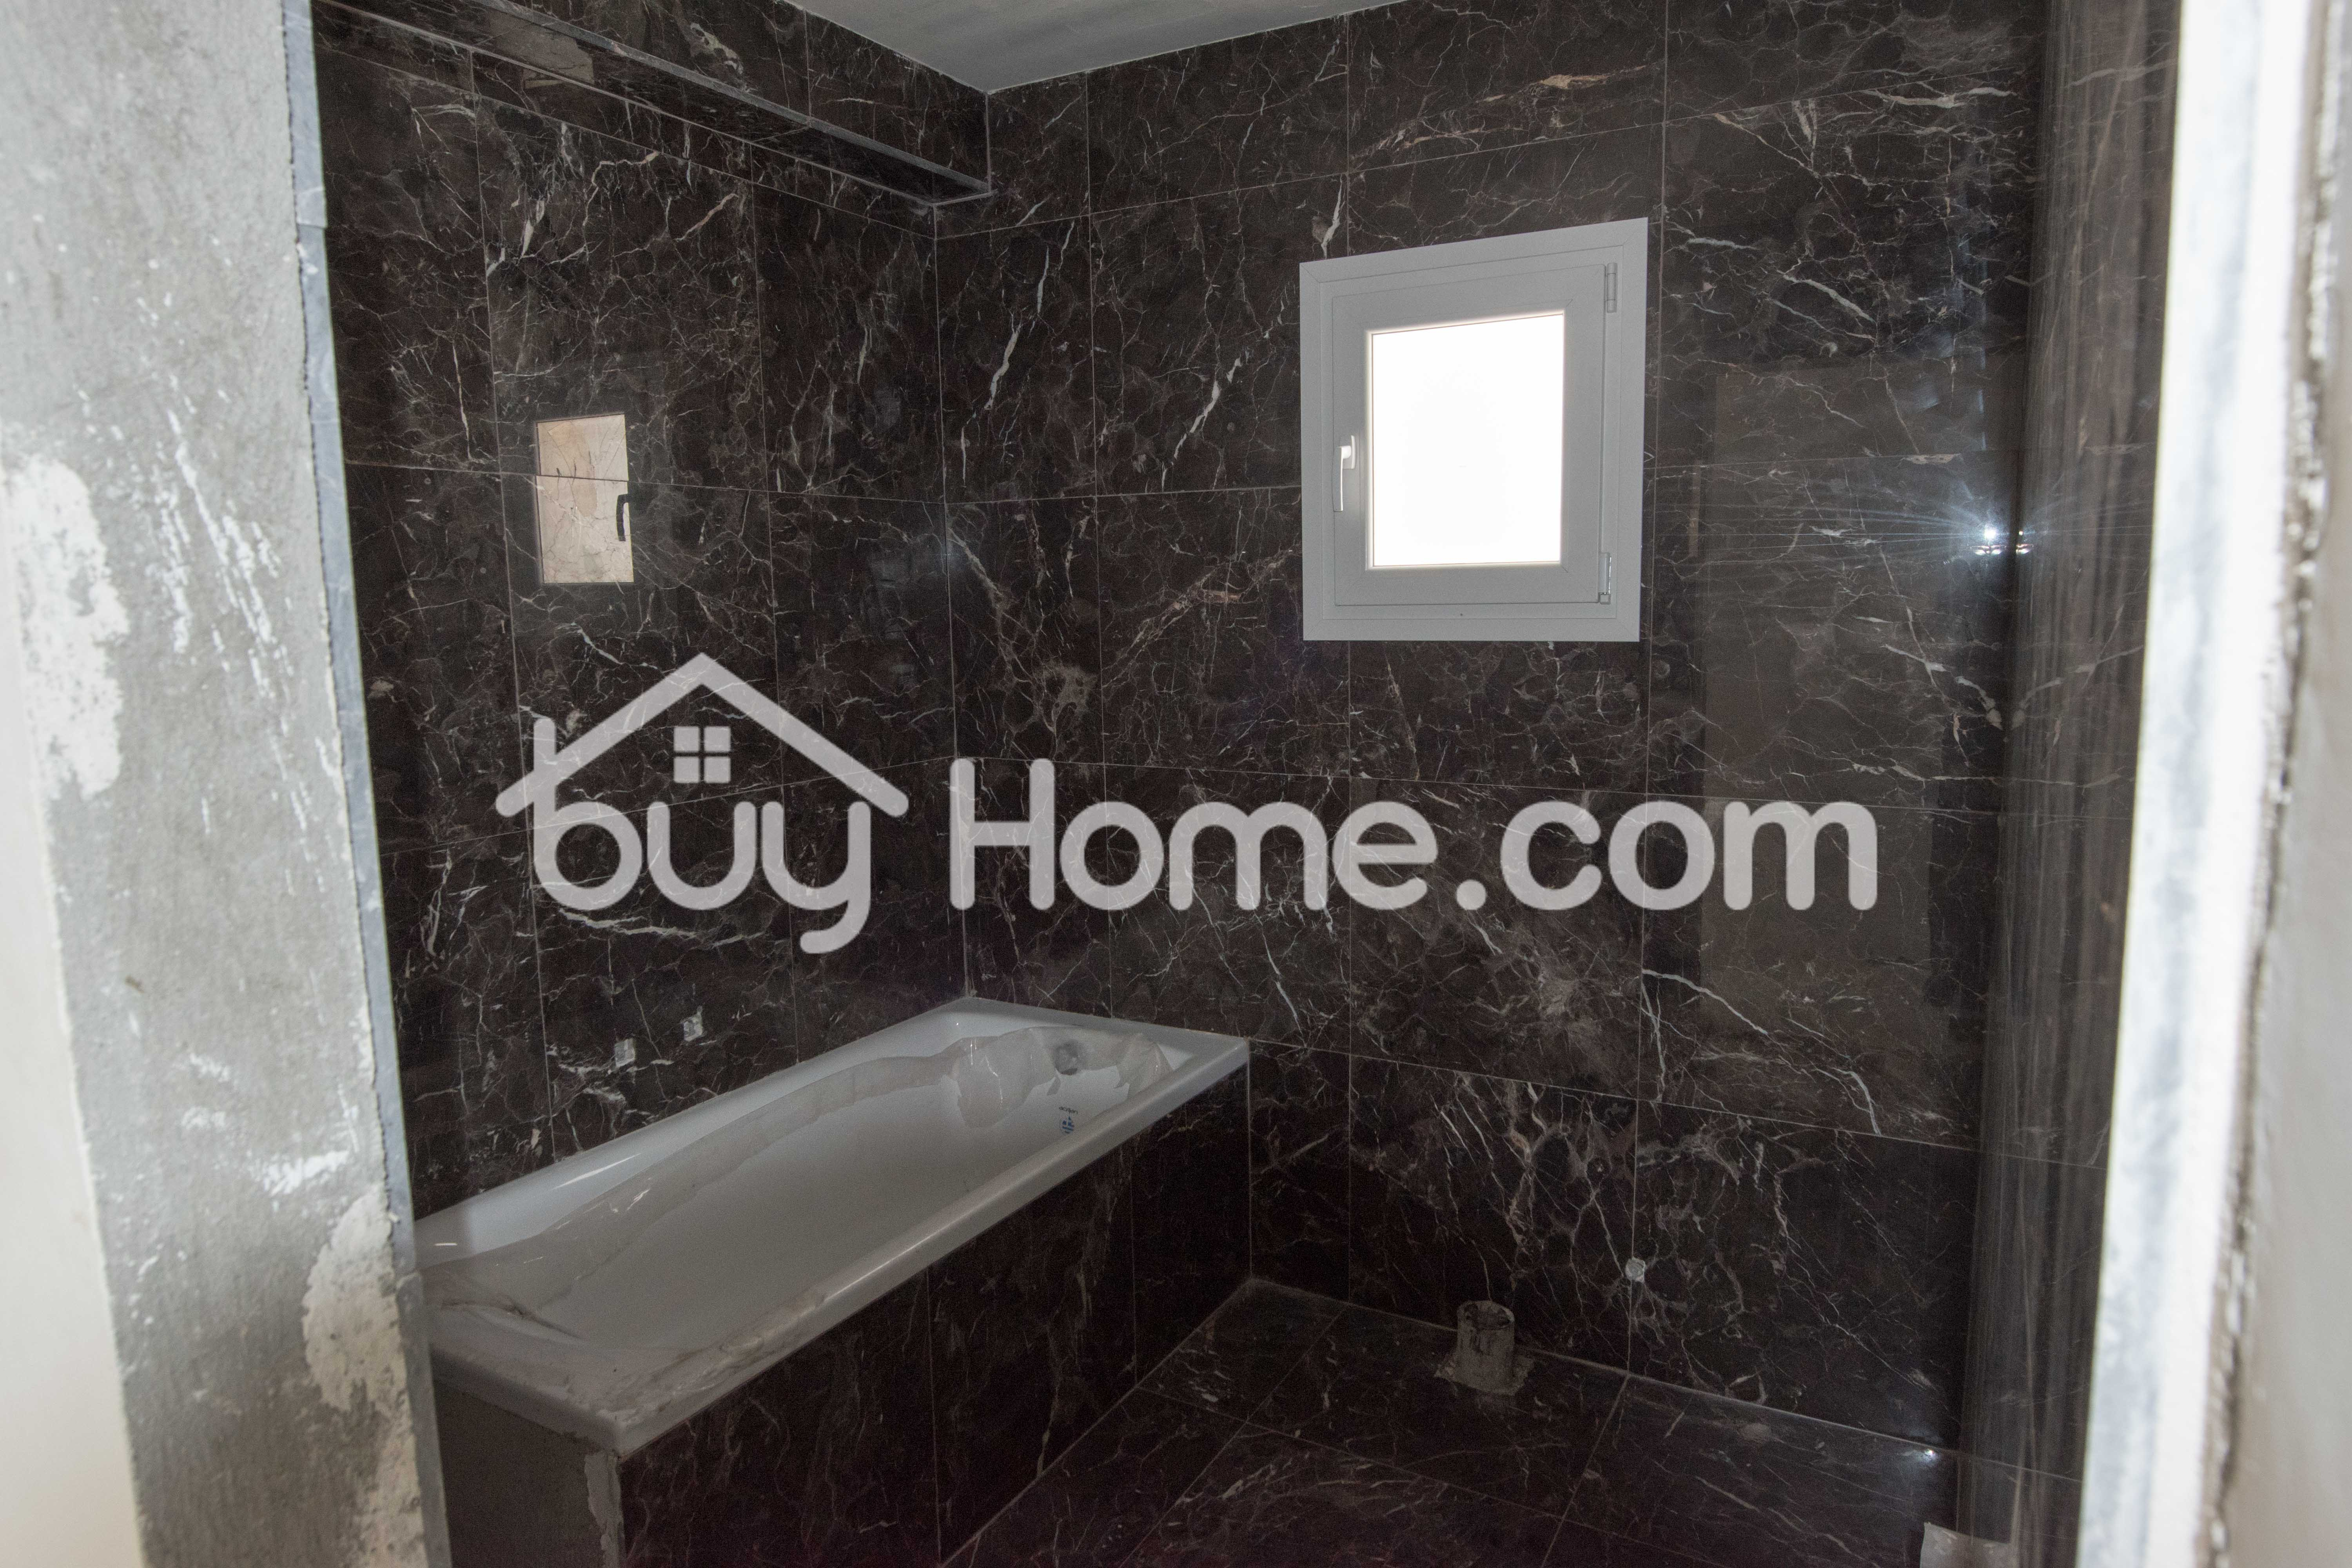 Detached House Paraklissia | BuyHome